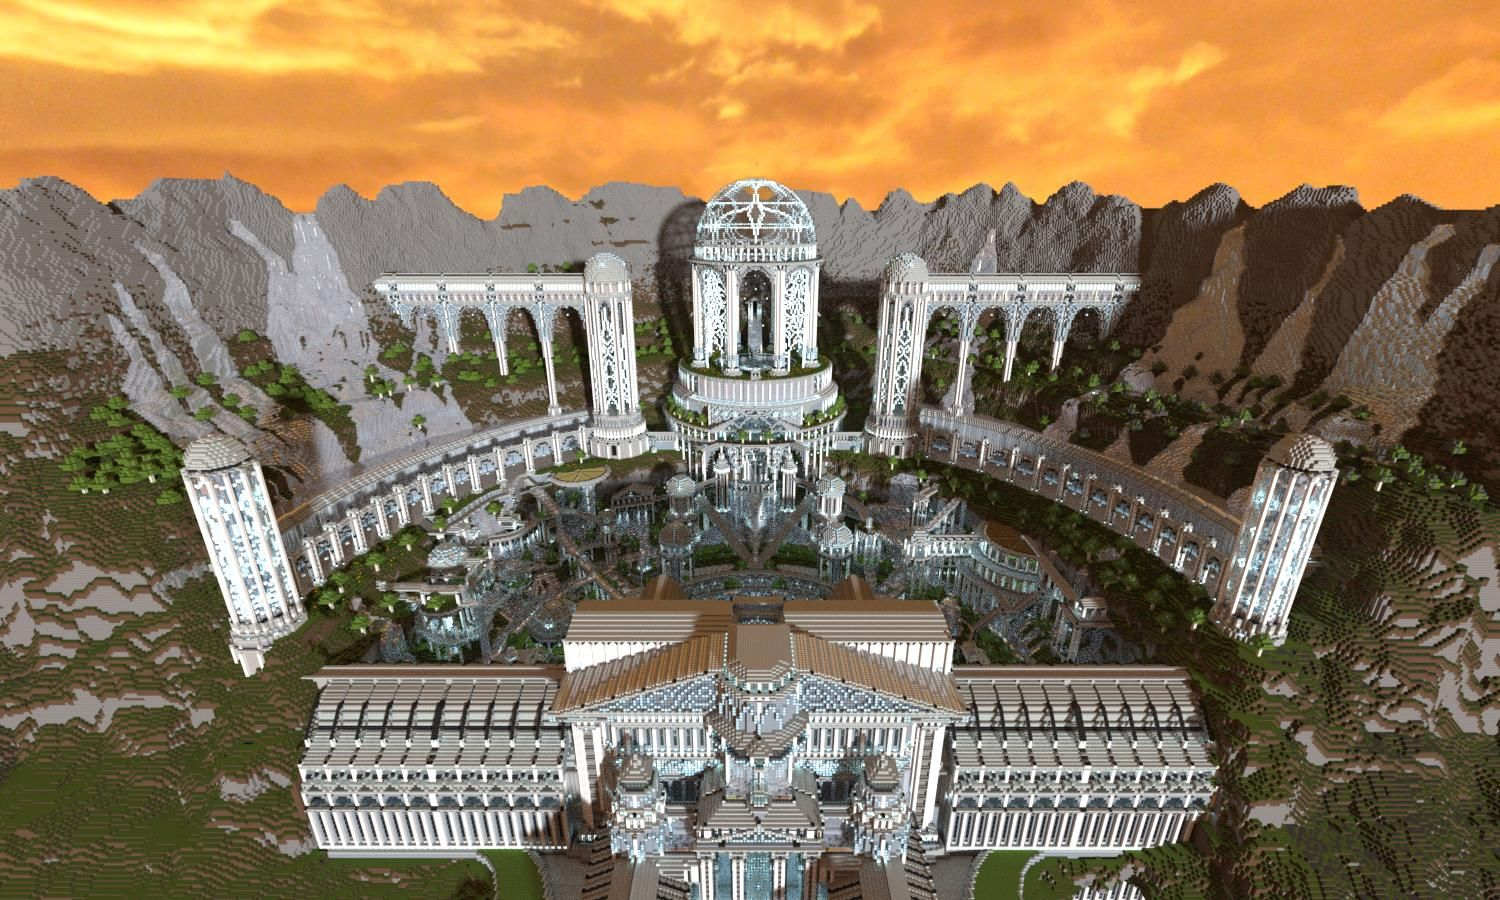 Greek Architecture Minecraft 3 months and 60 million blocks - a fantasy city in minecraft